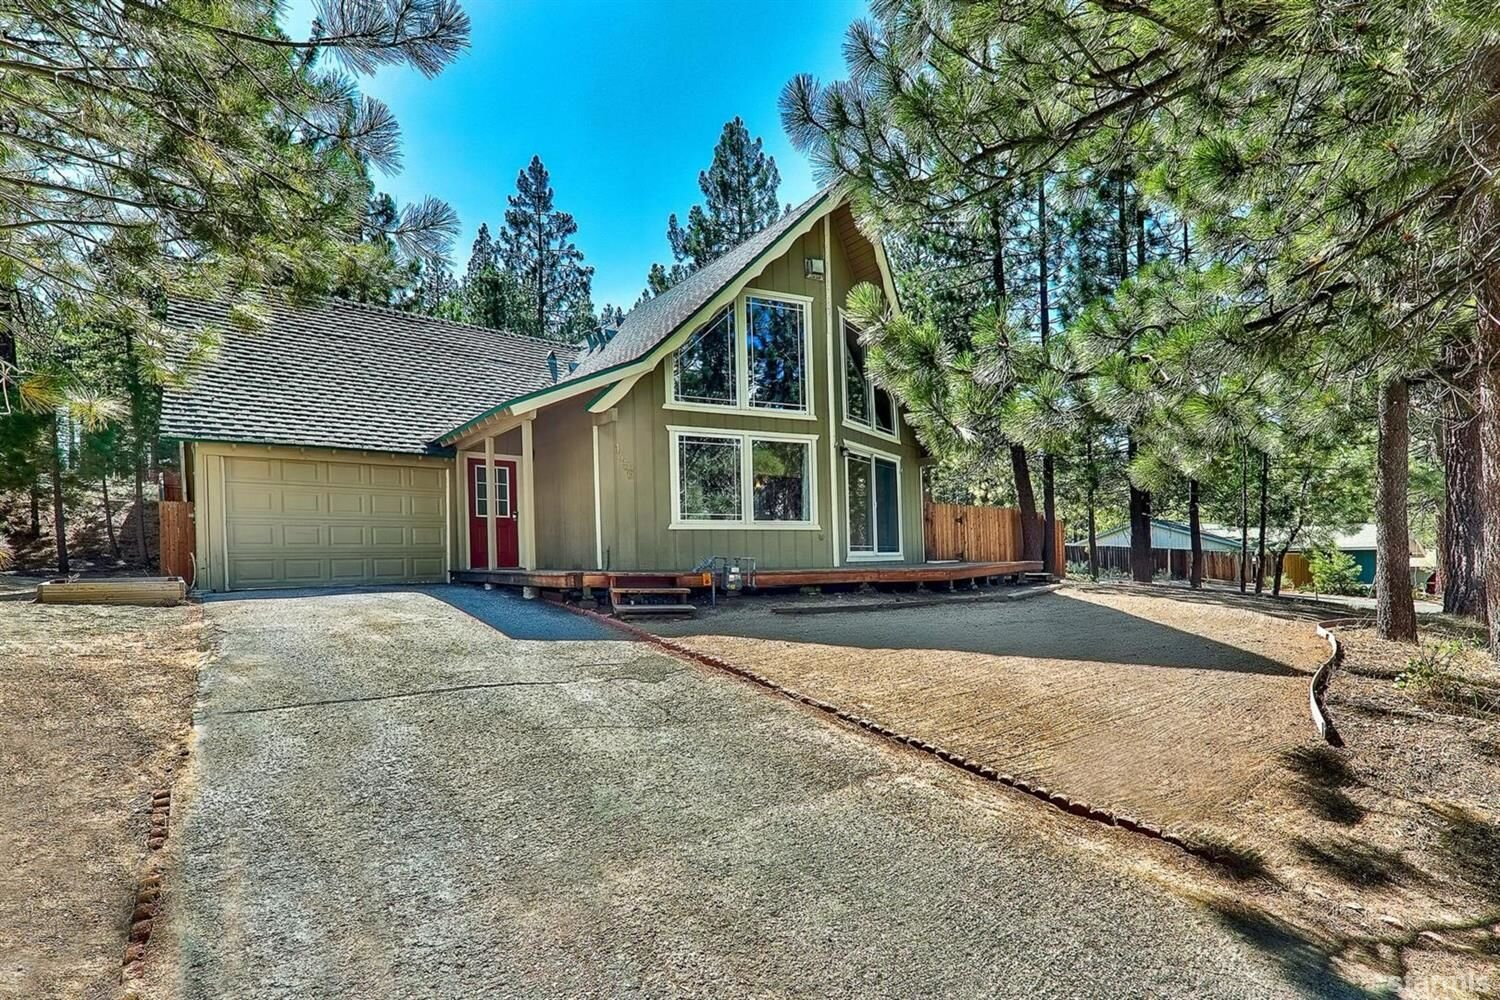 1456 Matheson Drive, South Lake Tahoe, CA  3 Bed | 2 Bath | 1,451 sqft | $399,000 Leann Dupre | 530.307.3490